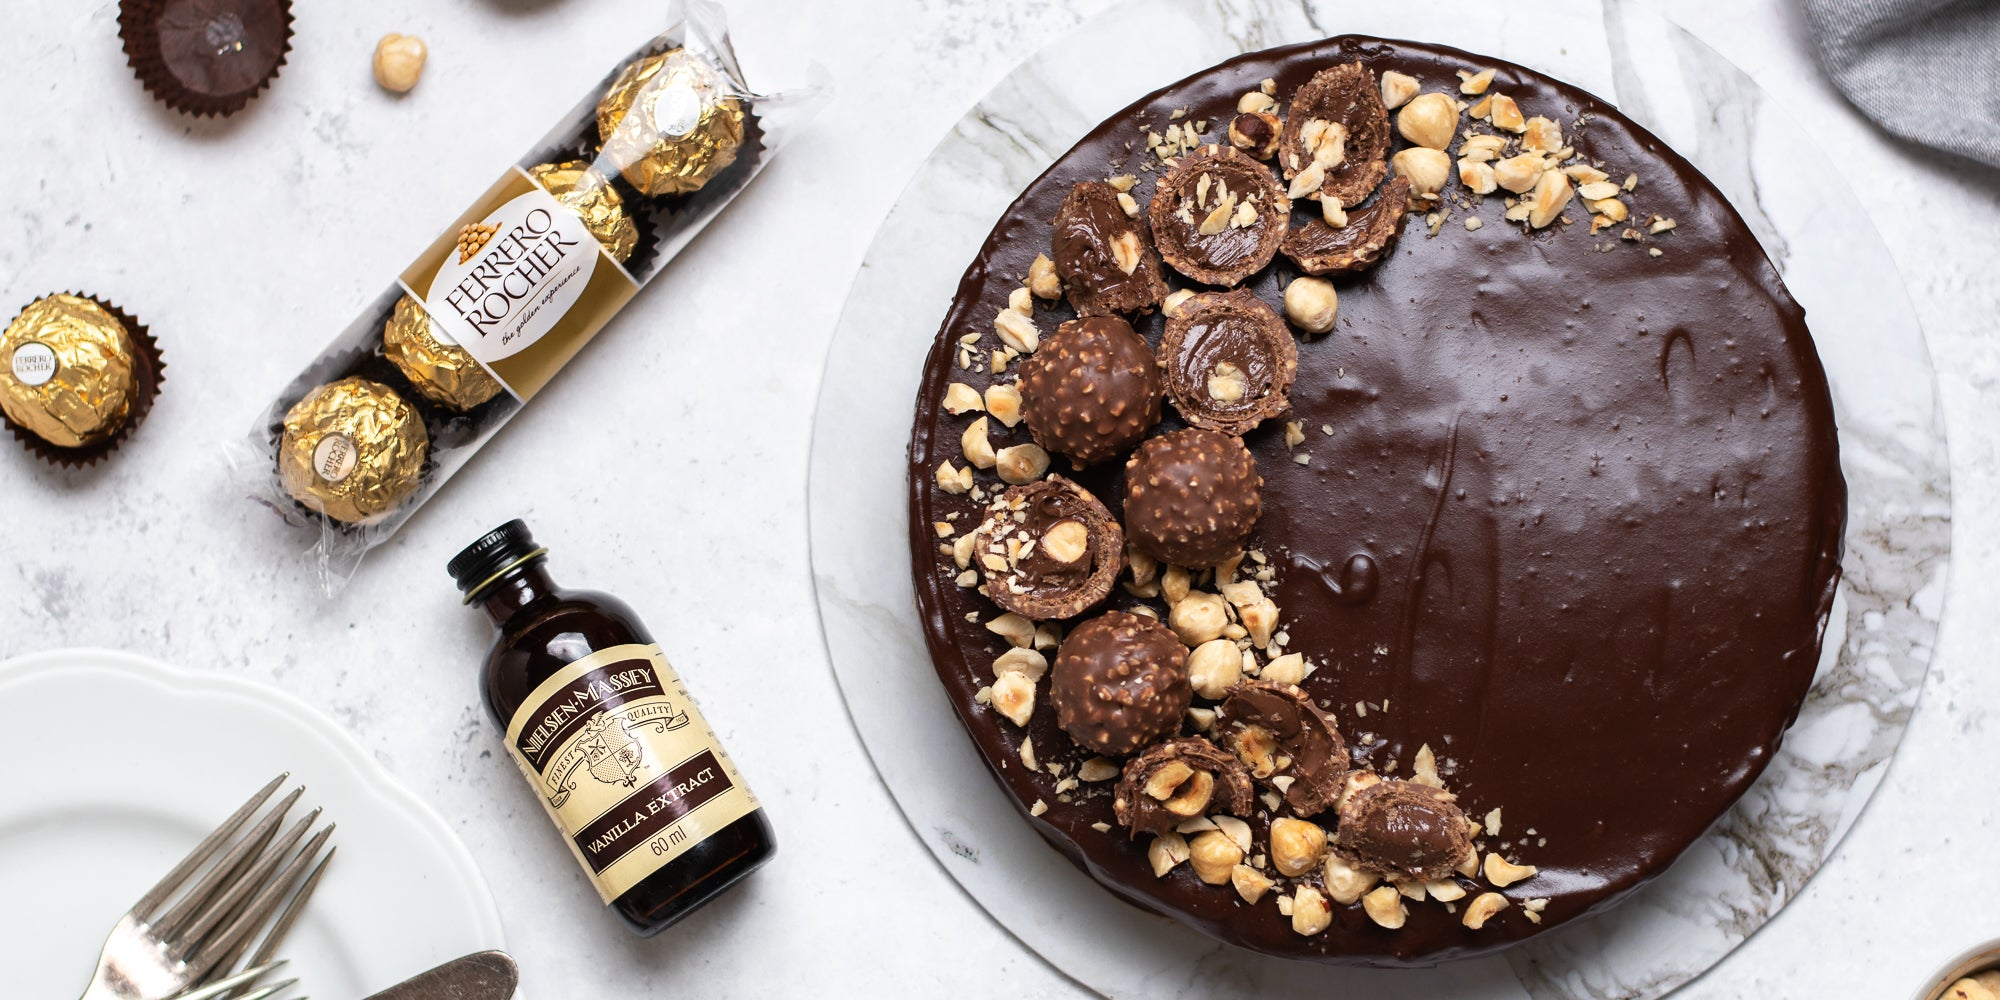 Top view of Gluten Free Chocolate Truffle Sachertorte sprinkled with hazelnuts, next to a packet of Ferrero Rocher's and a bottle of Nielsen-Massey Vanilla Extract